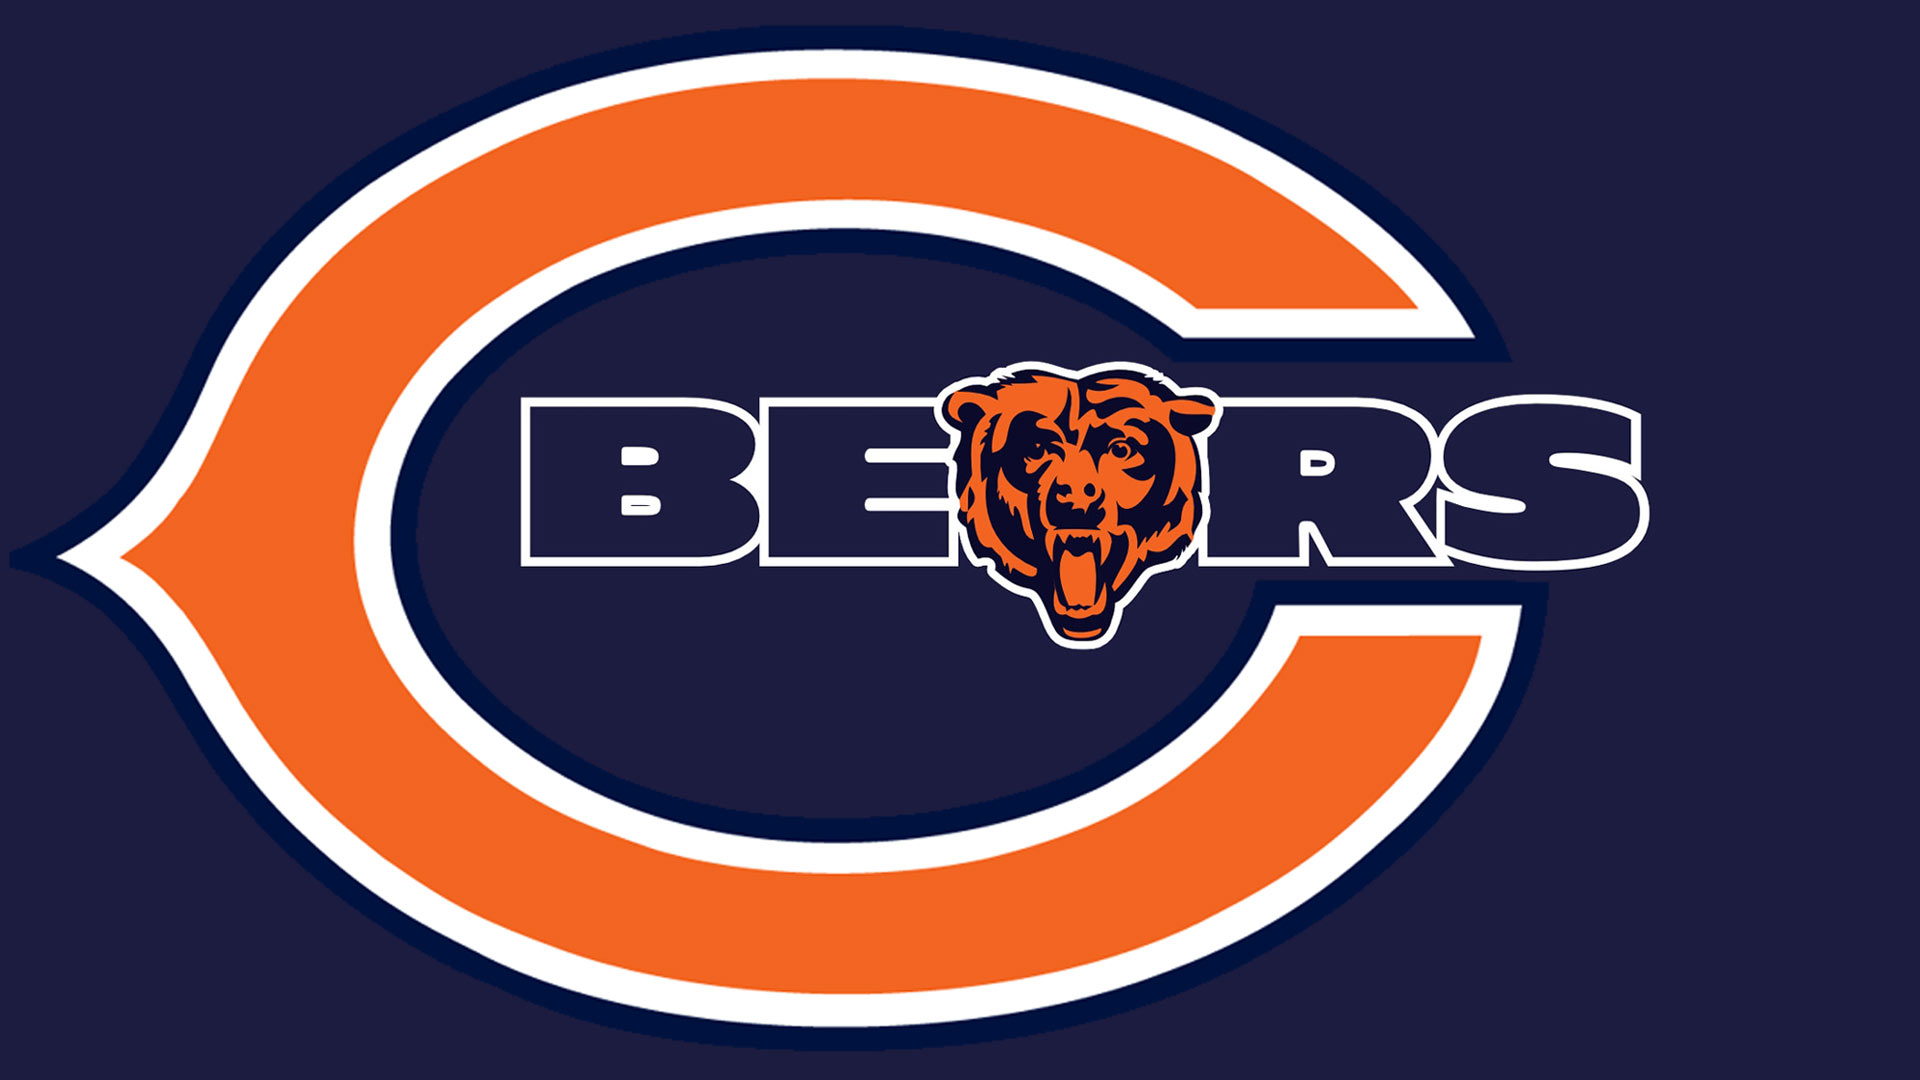 Chicago Bears logo Hd 1080p high quality Wallpaper screen size 1920X1080